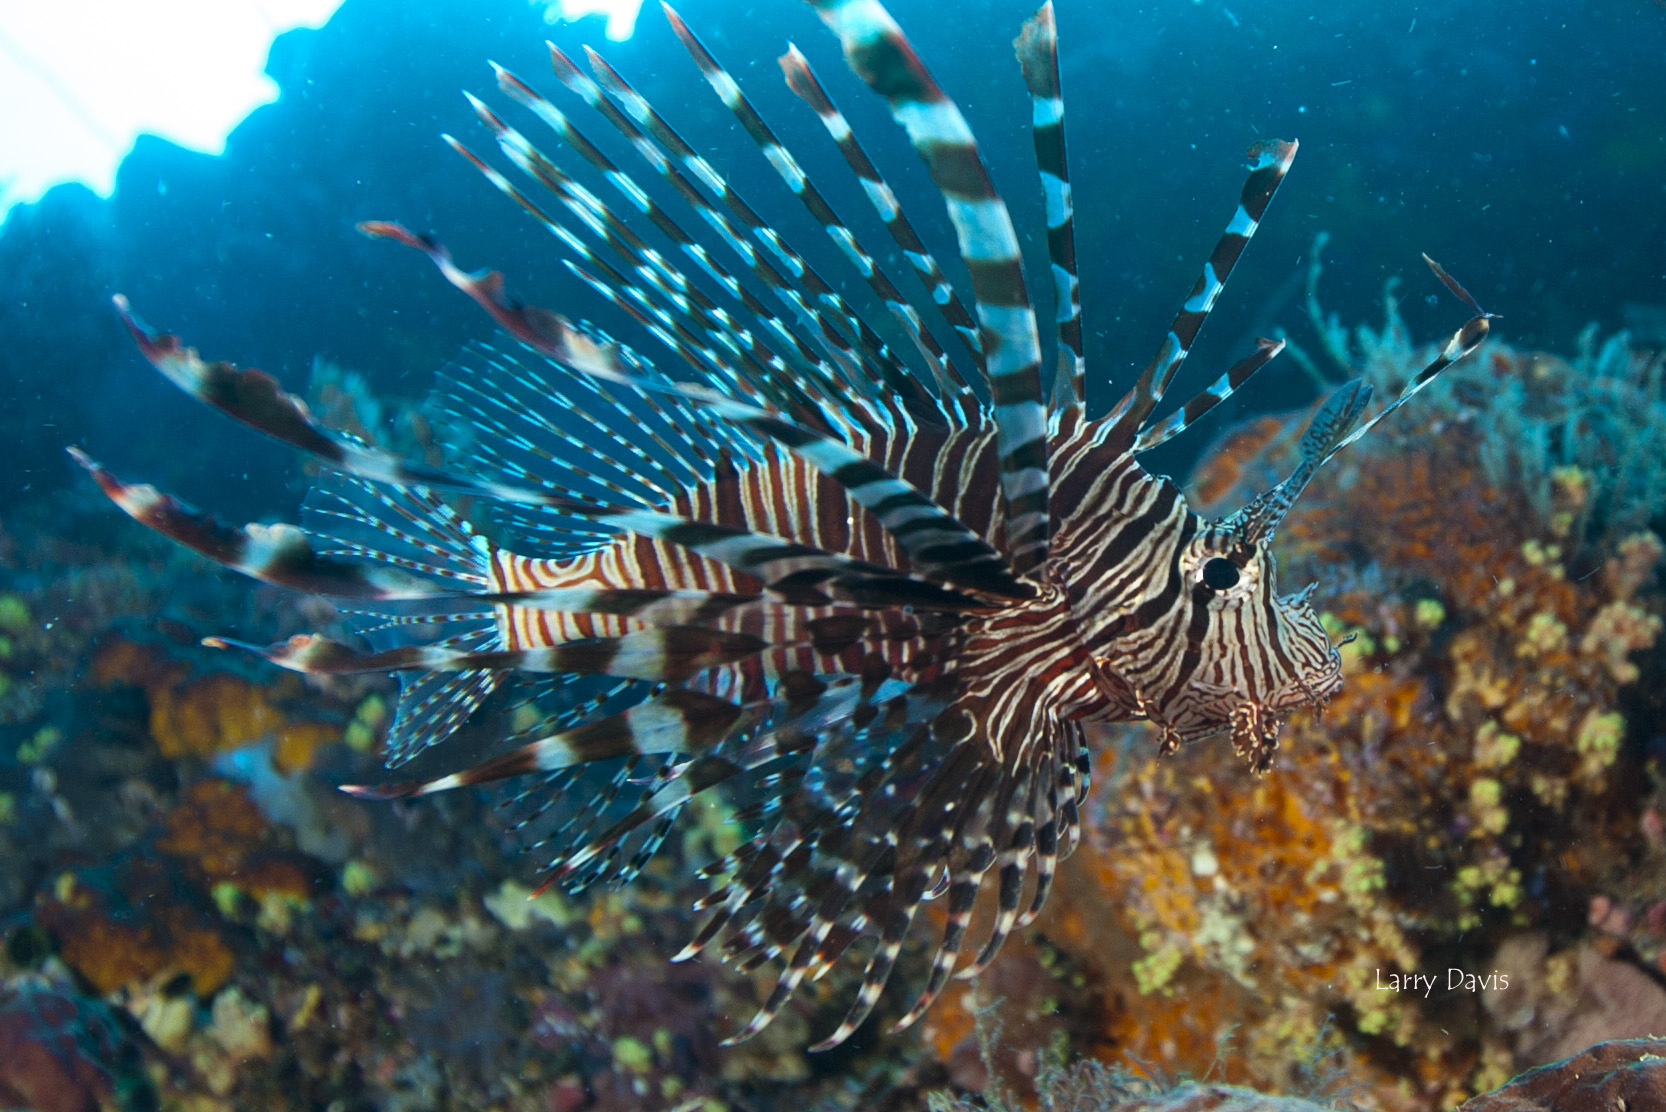 Florida Turns to Smartphone App in Battle Against Invasive Lionfish